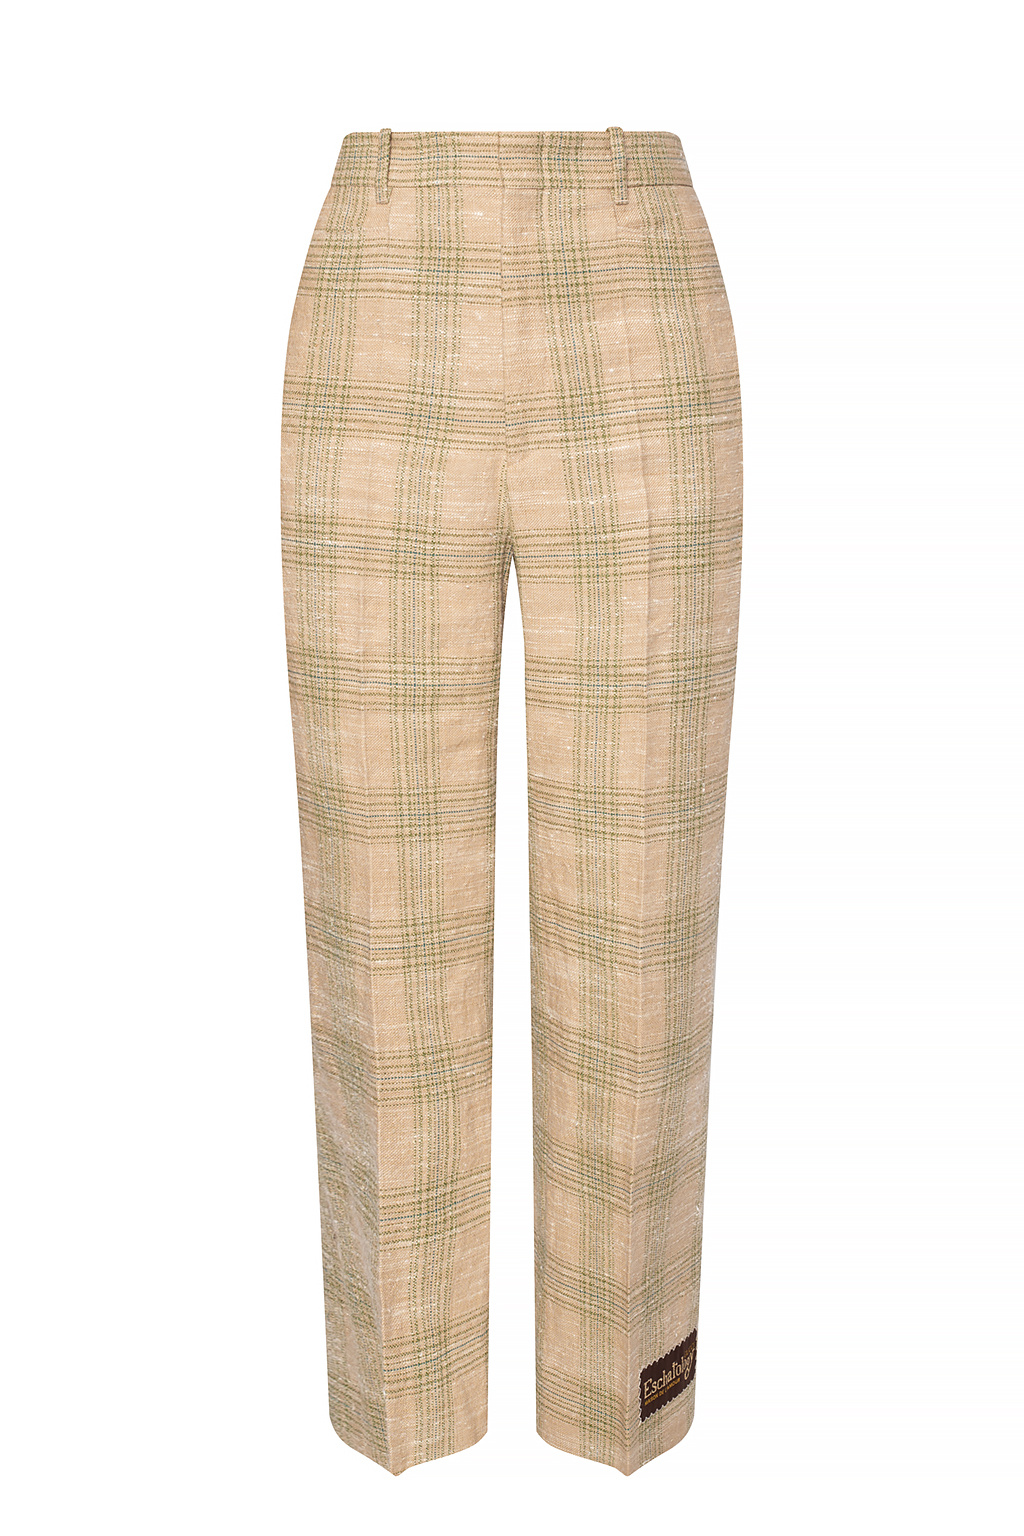 Gucci Pleat-front trousers